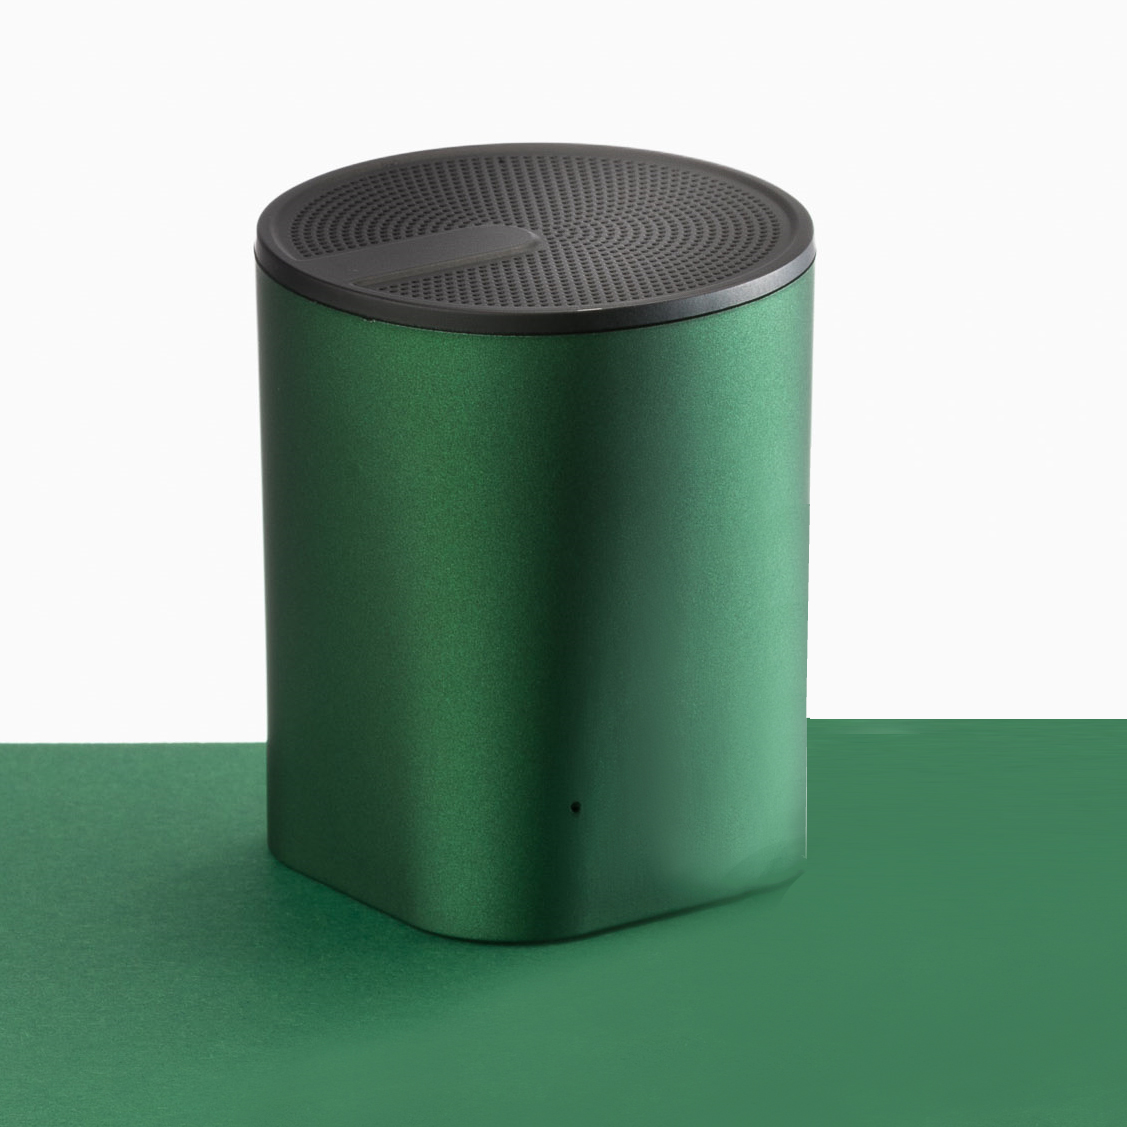 Green Colour Sound Compact Speaker